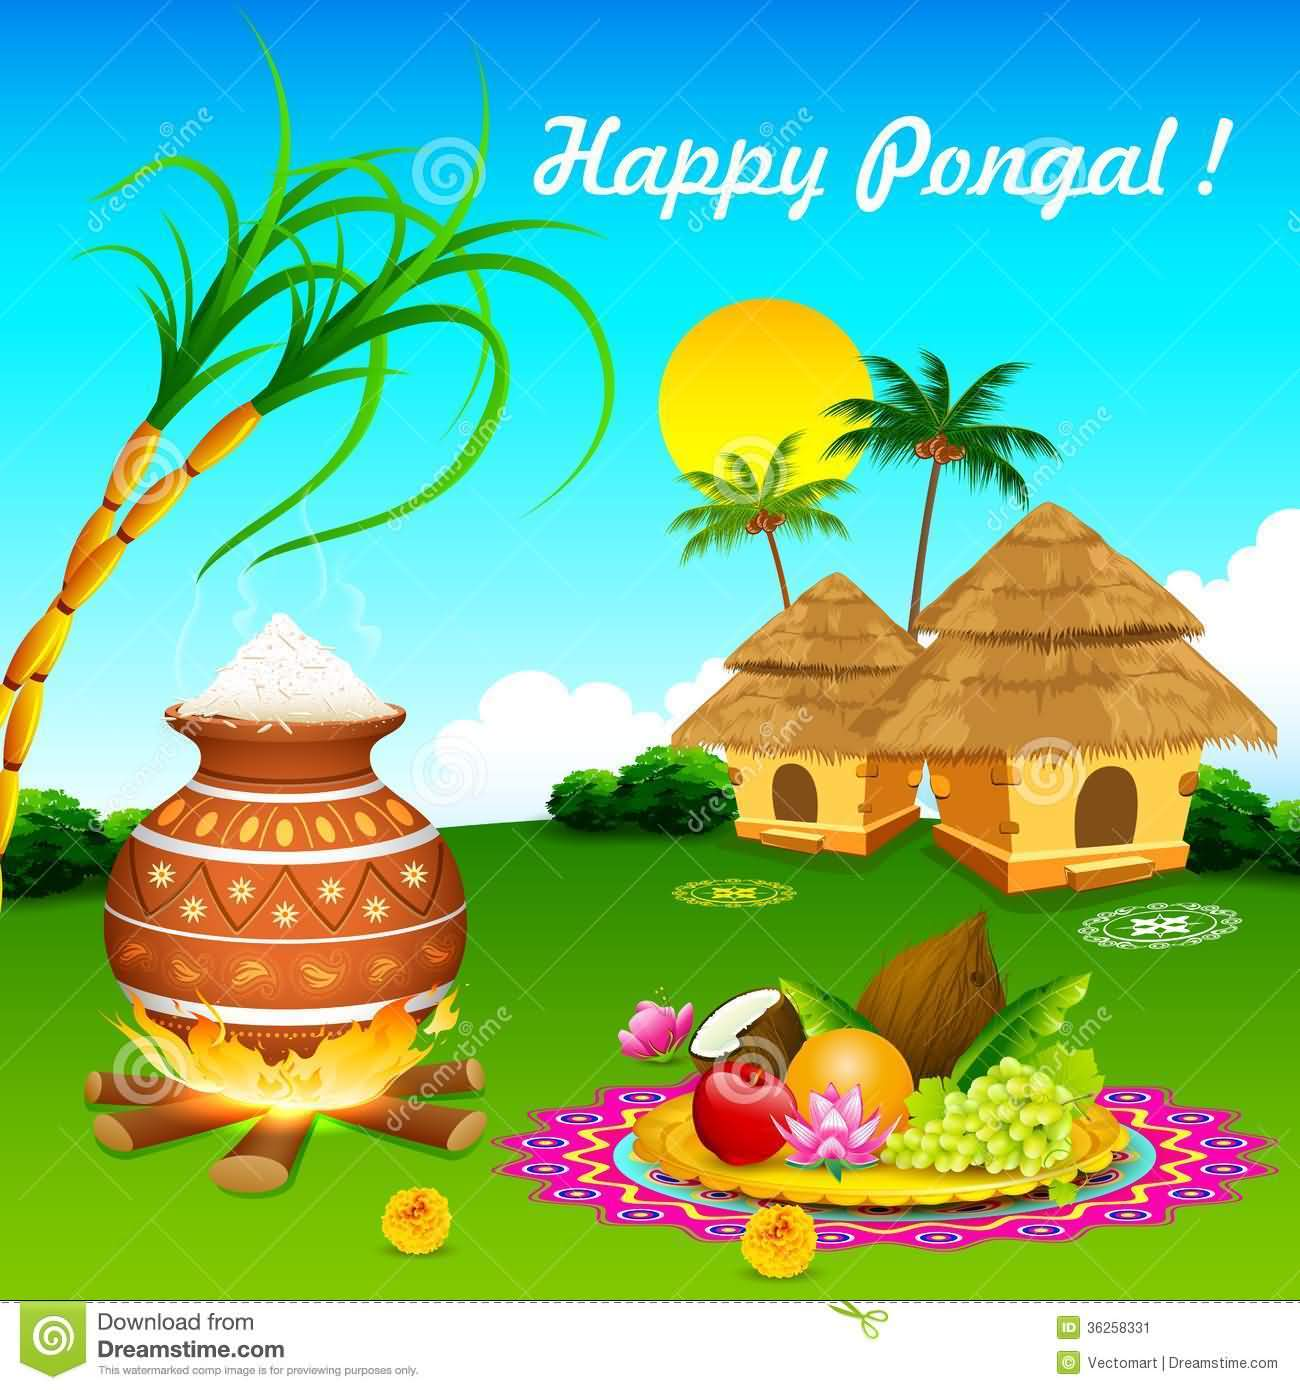 2-Happy Pongal Wishes